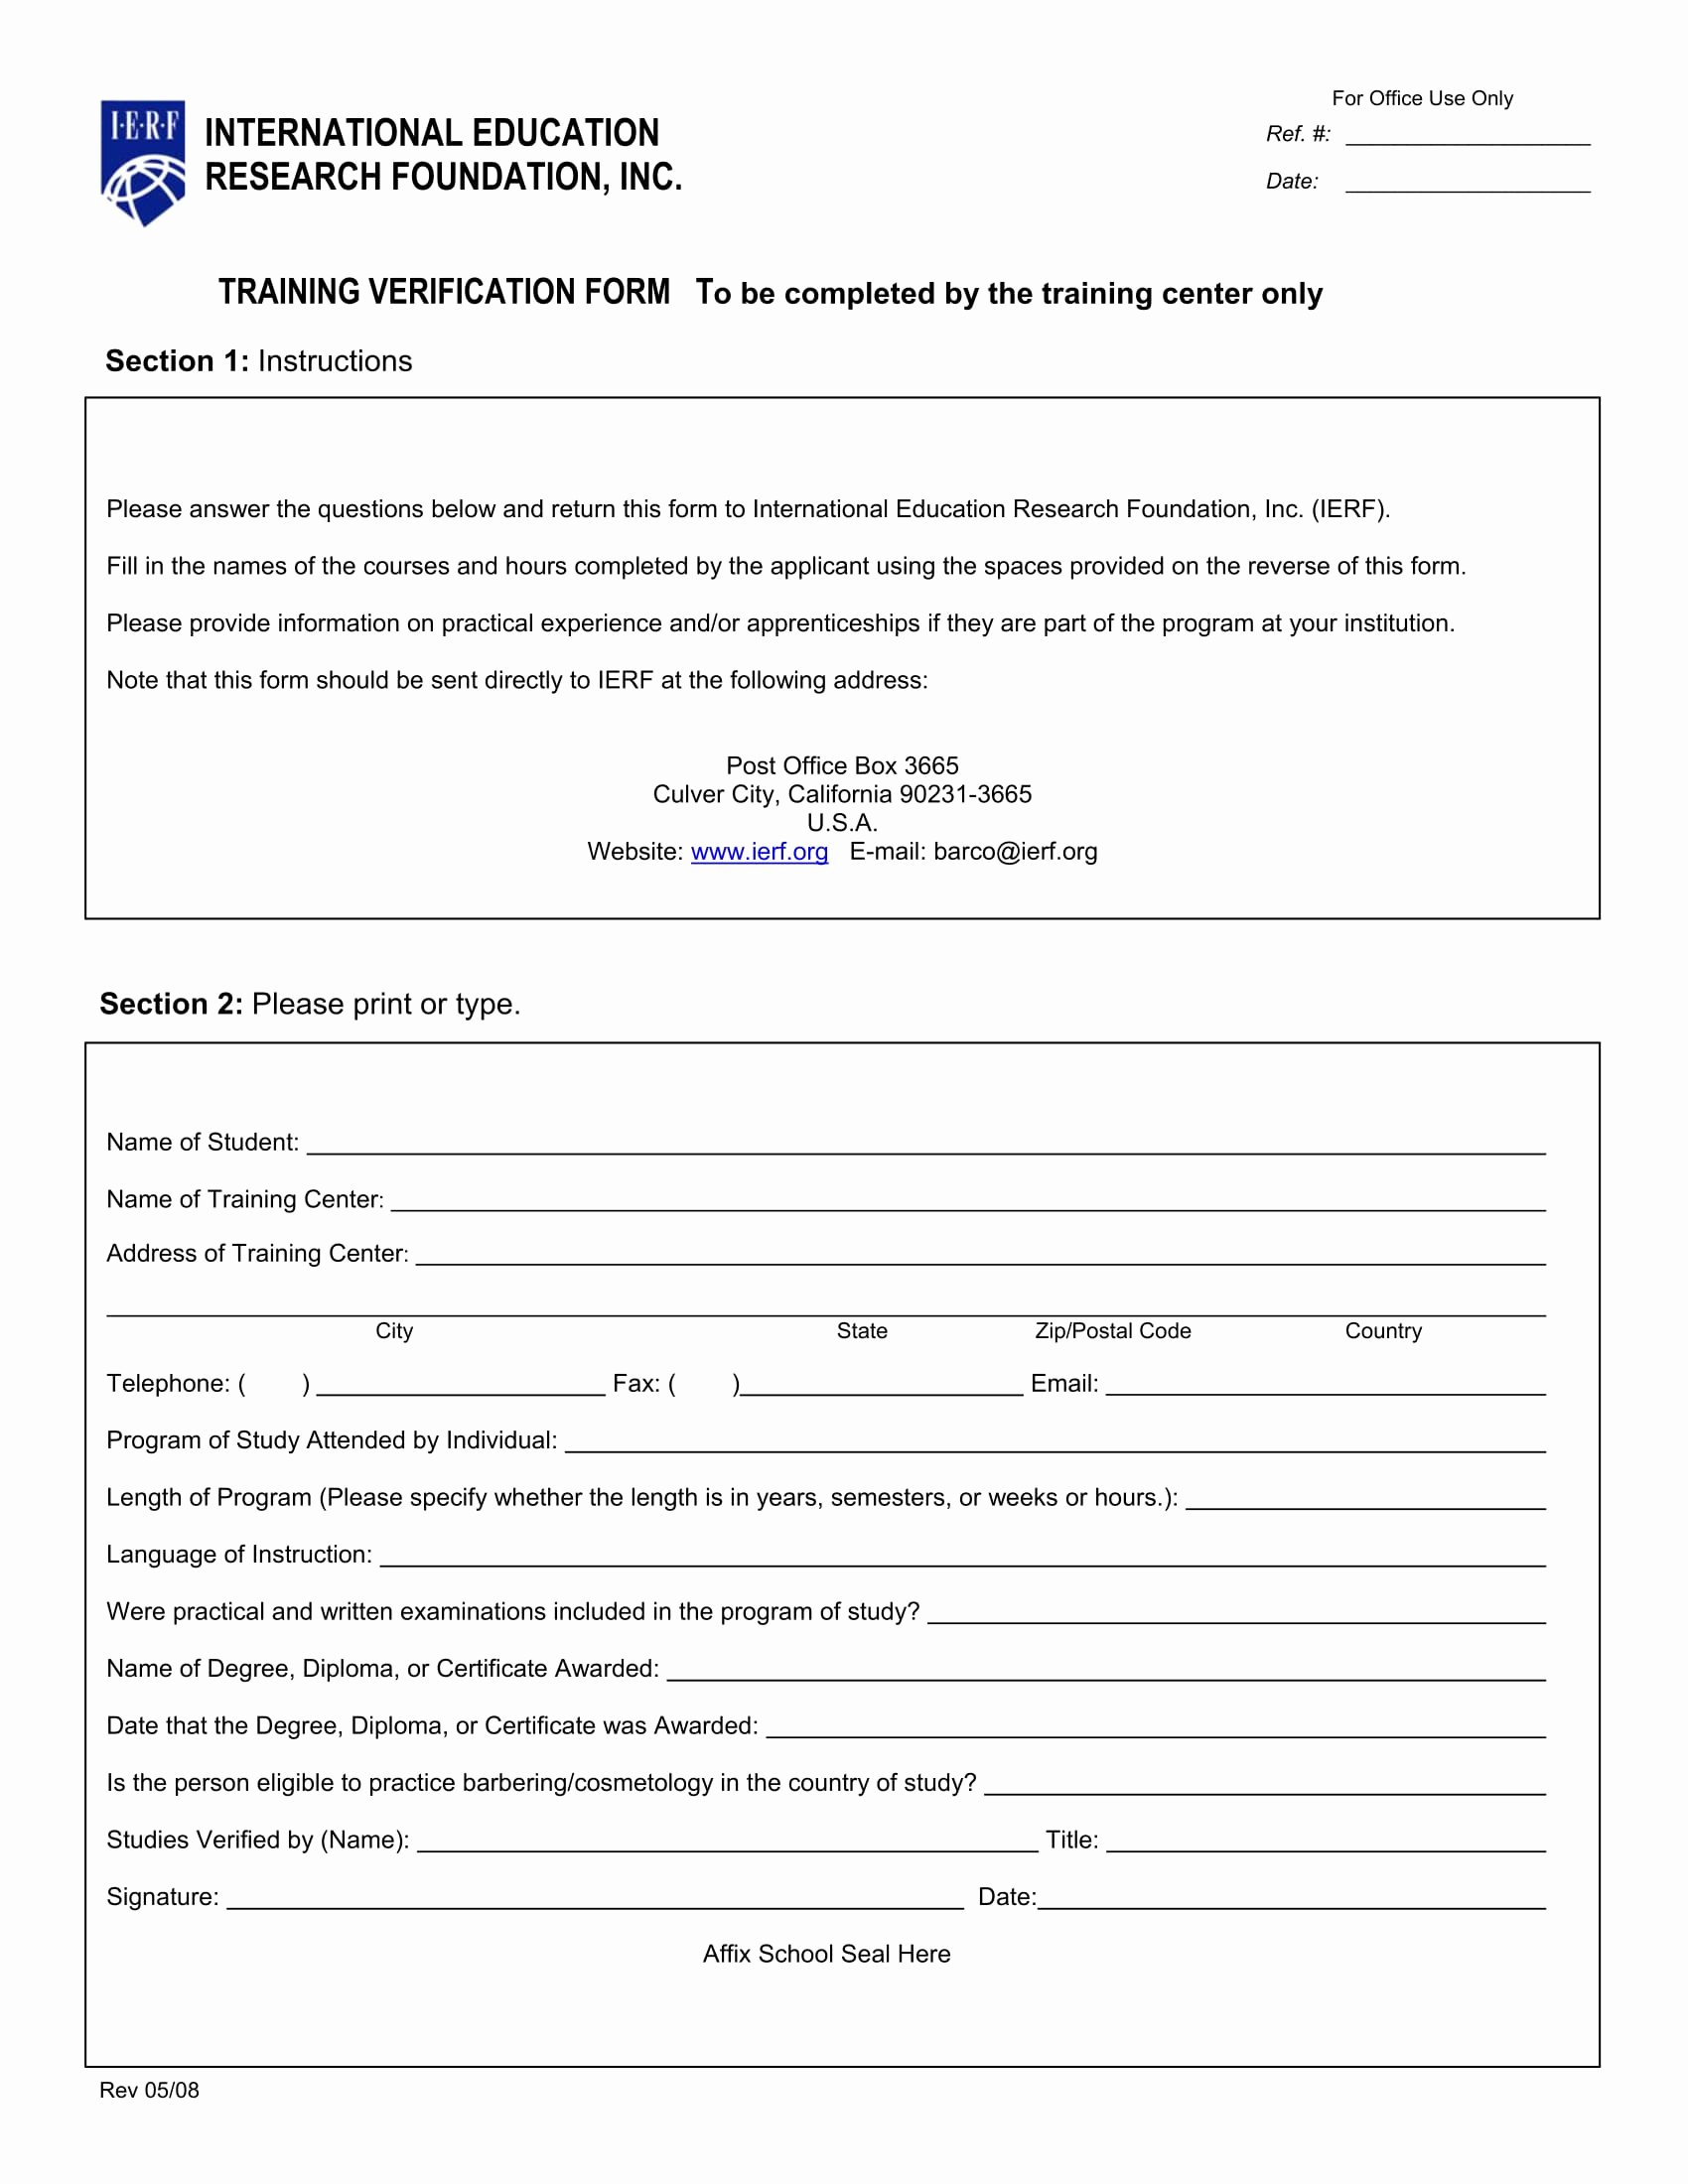 Training Request form Template Luxury Training Verification form Samples Definition Uses and